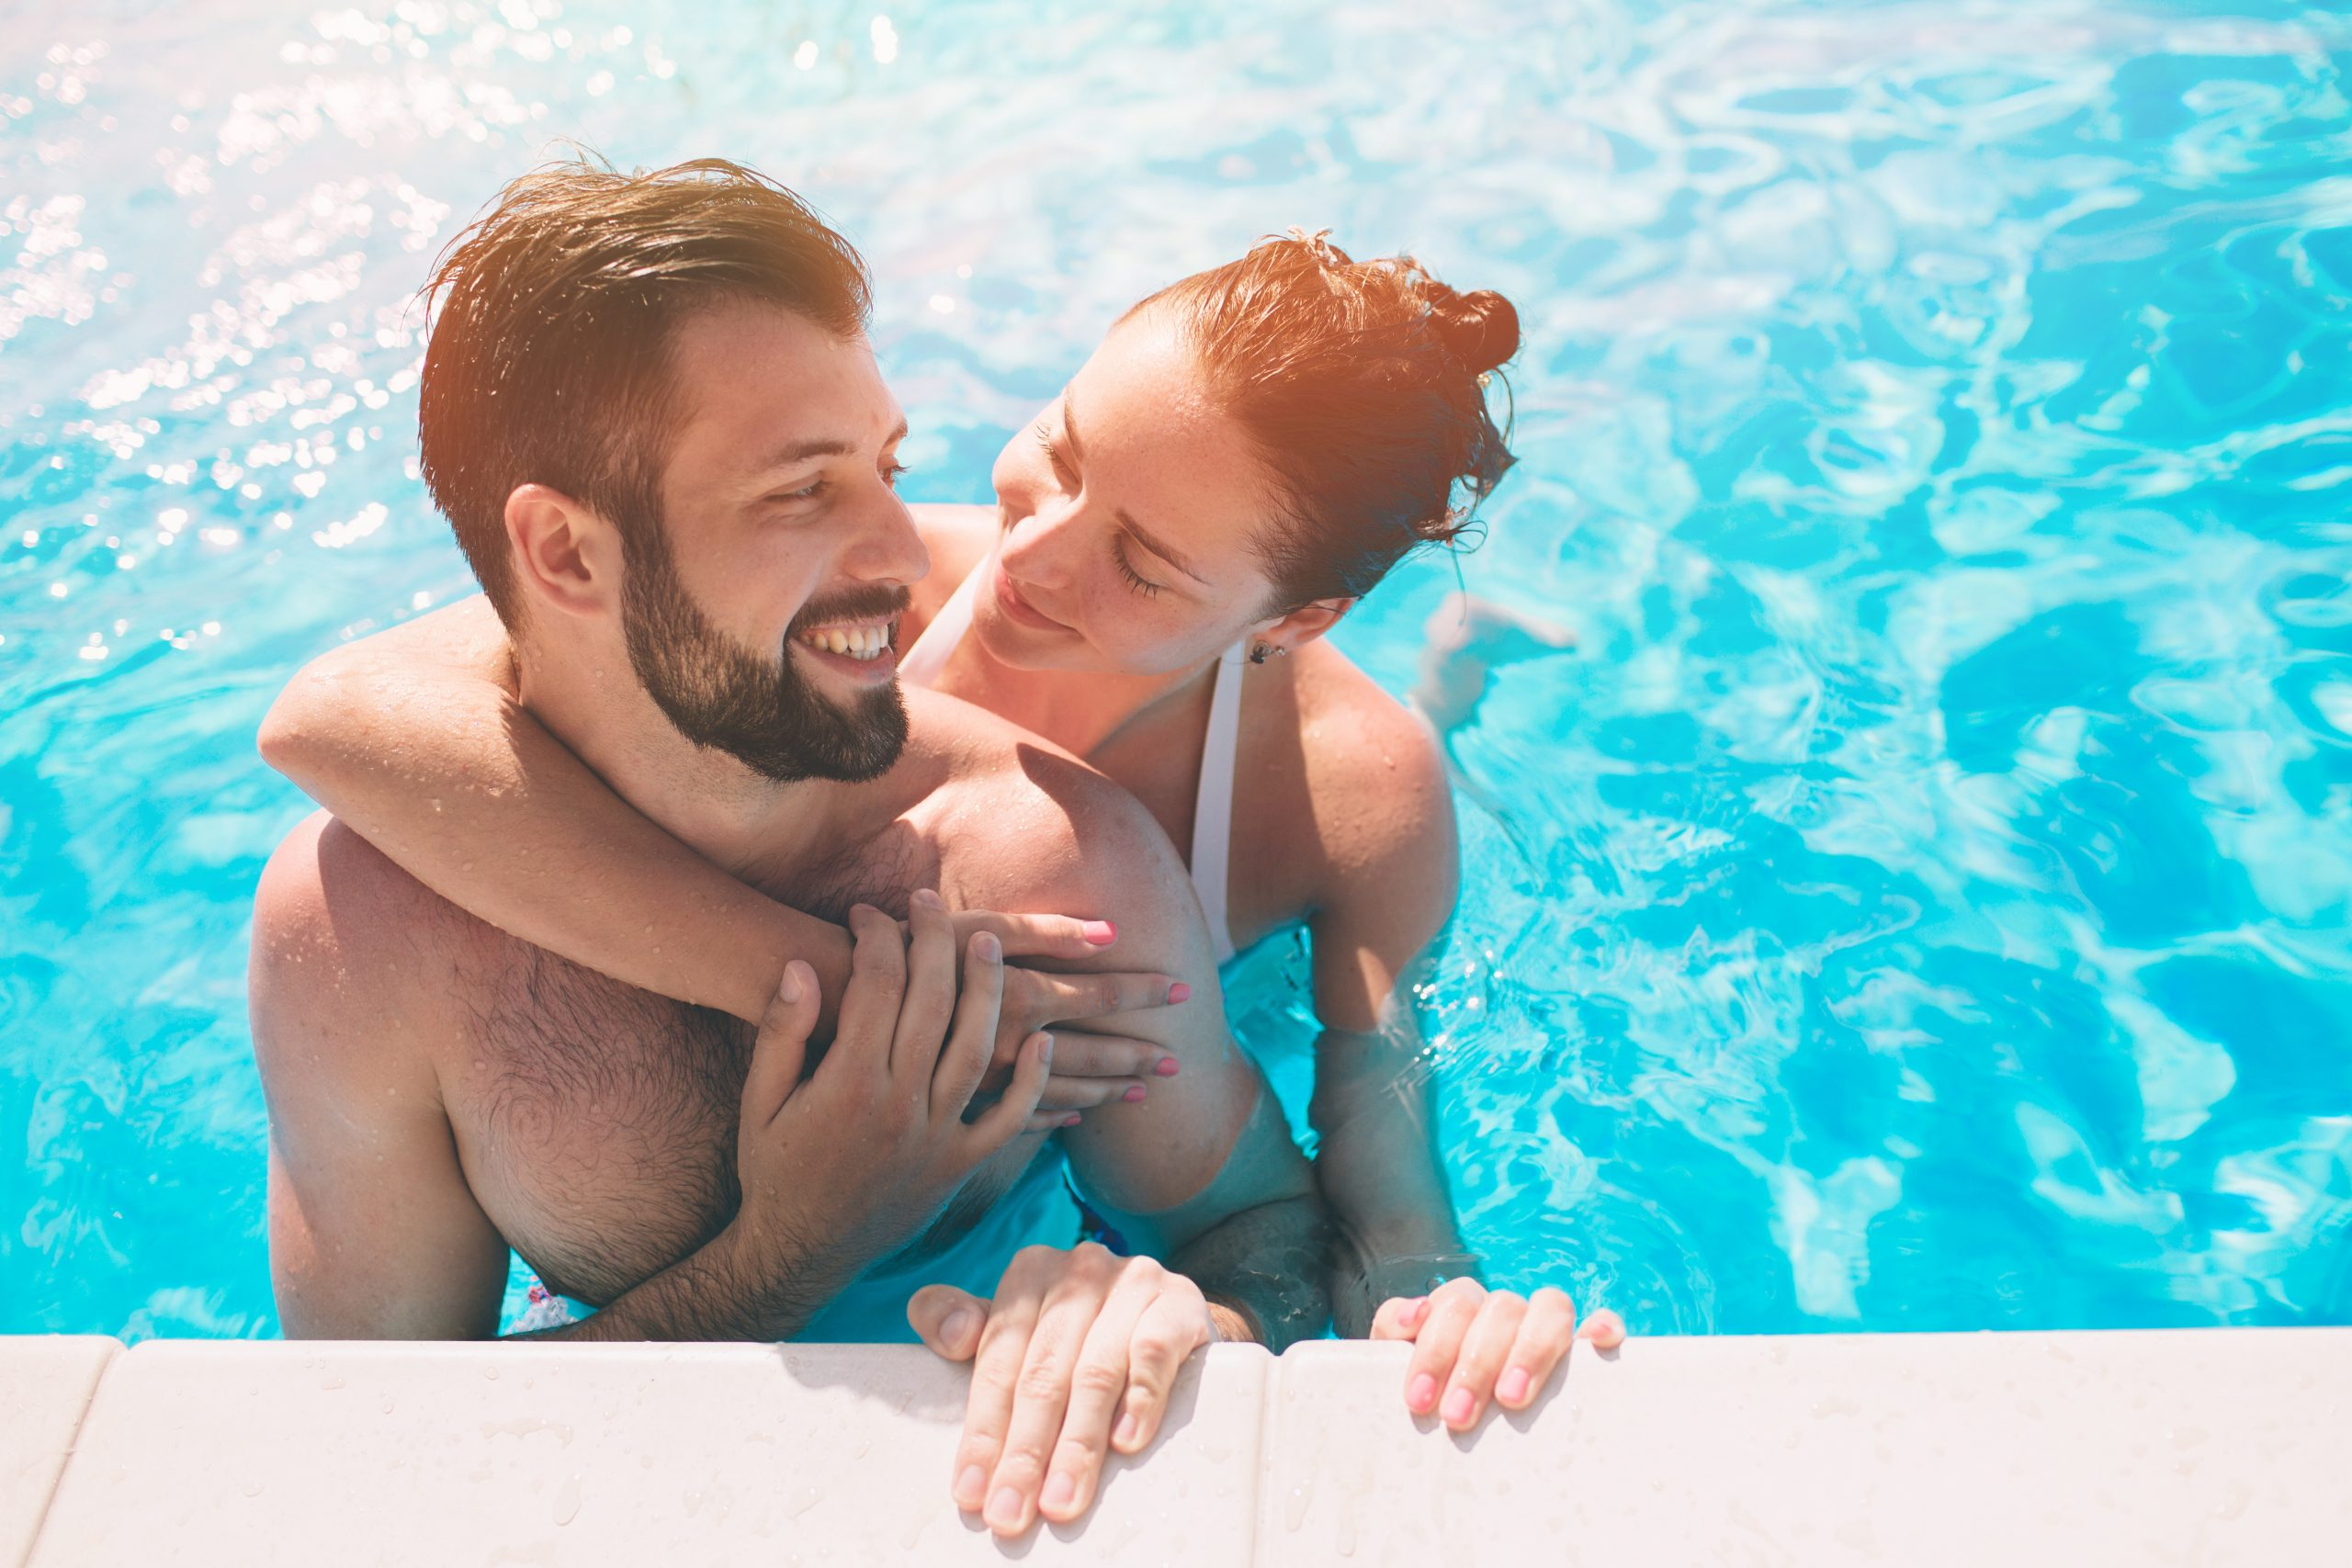 Cheerful youthful guy and lady resting while swimming pool outdoor. Couple in water.